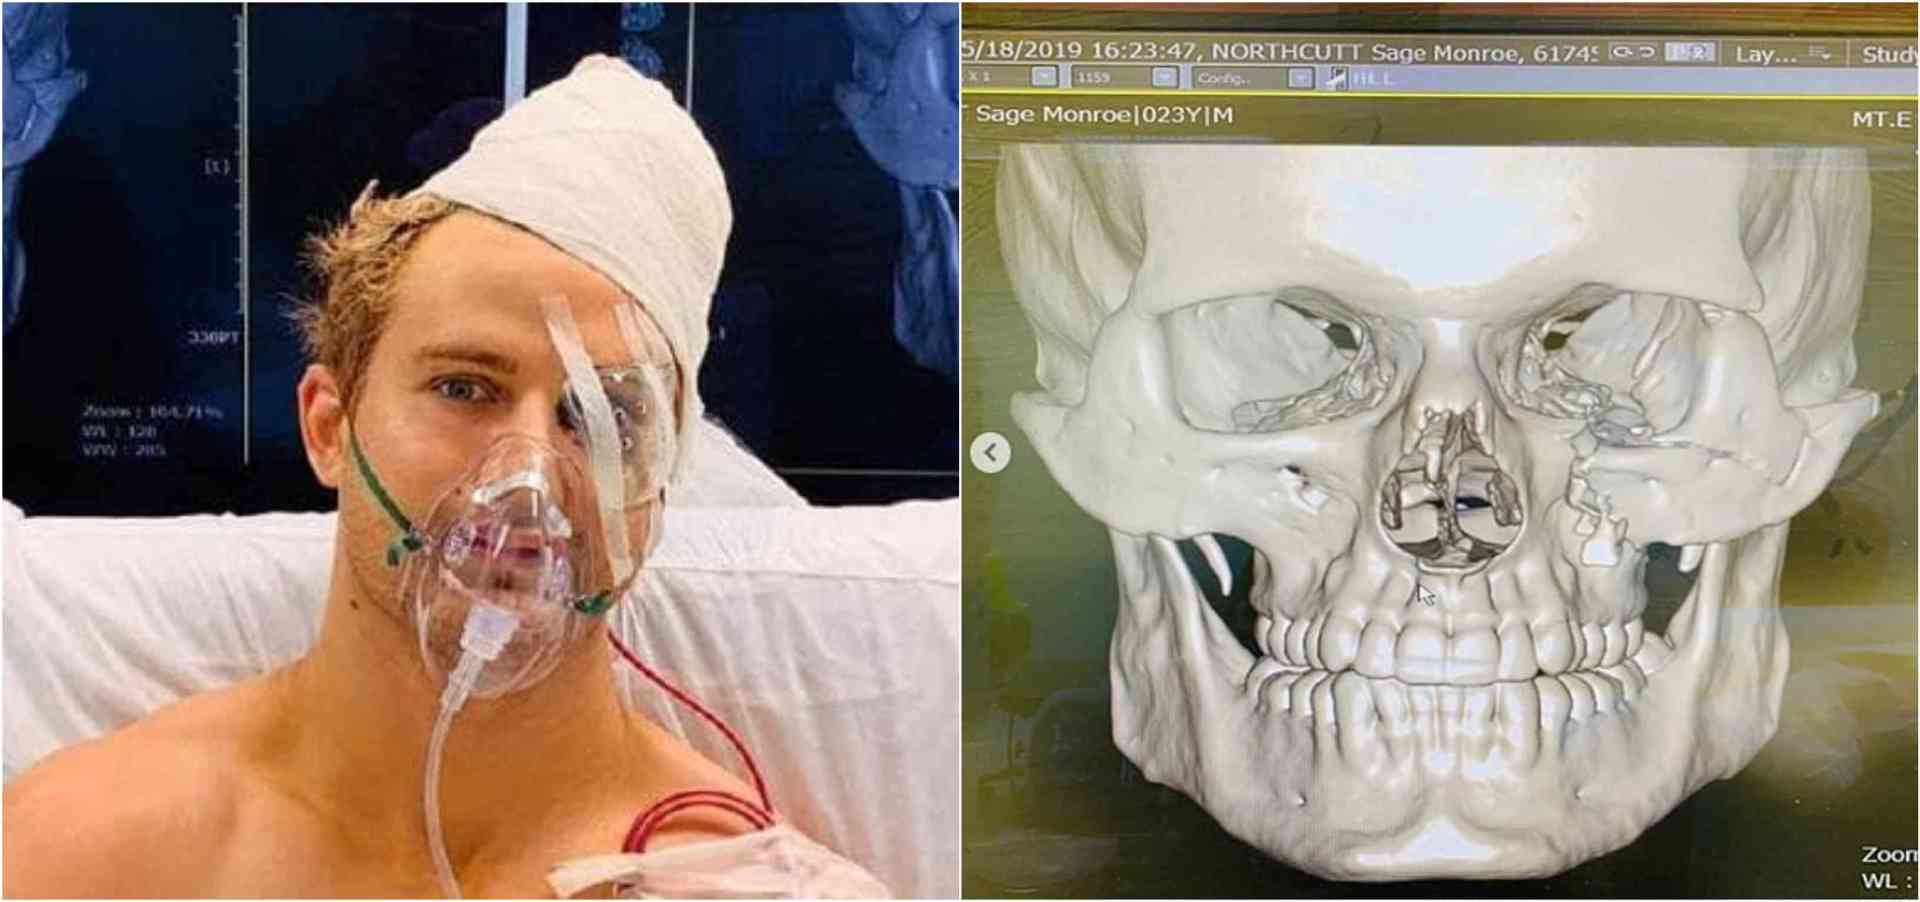 Sage Northcutt undergoes 9 hour surgery for multiple facial fractures - Northcutt